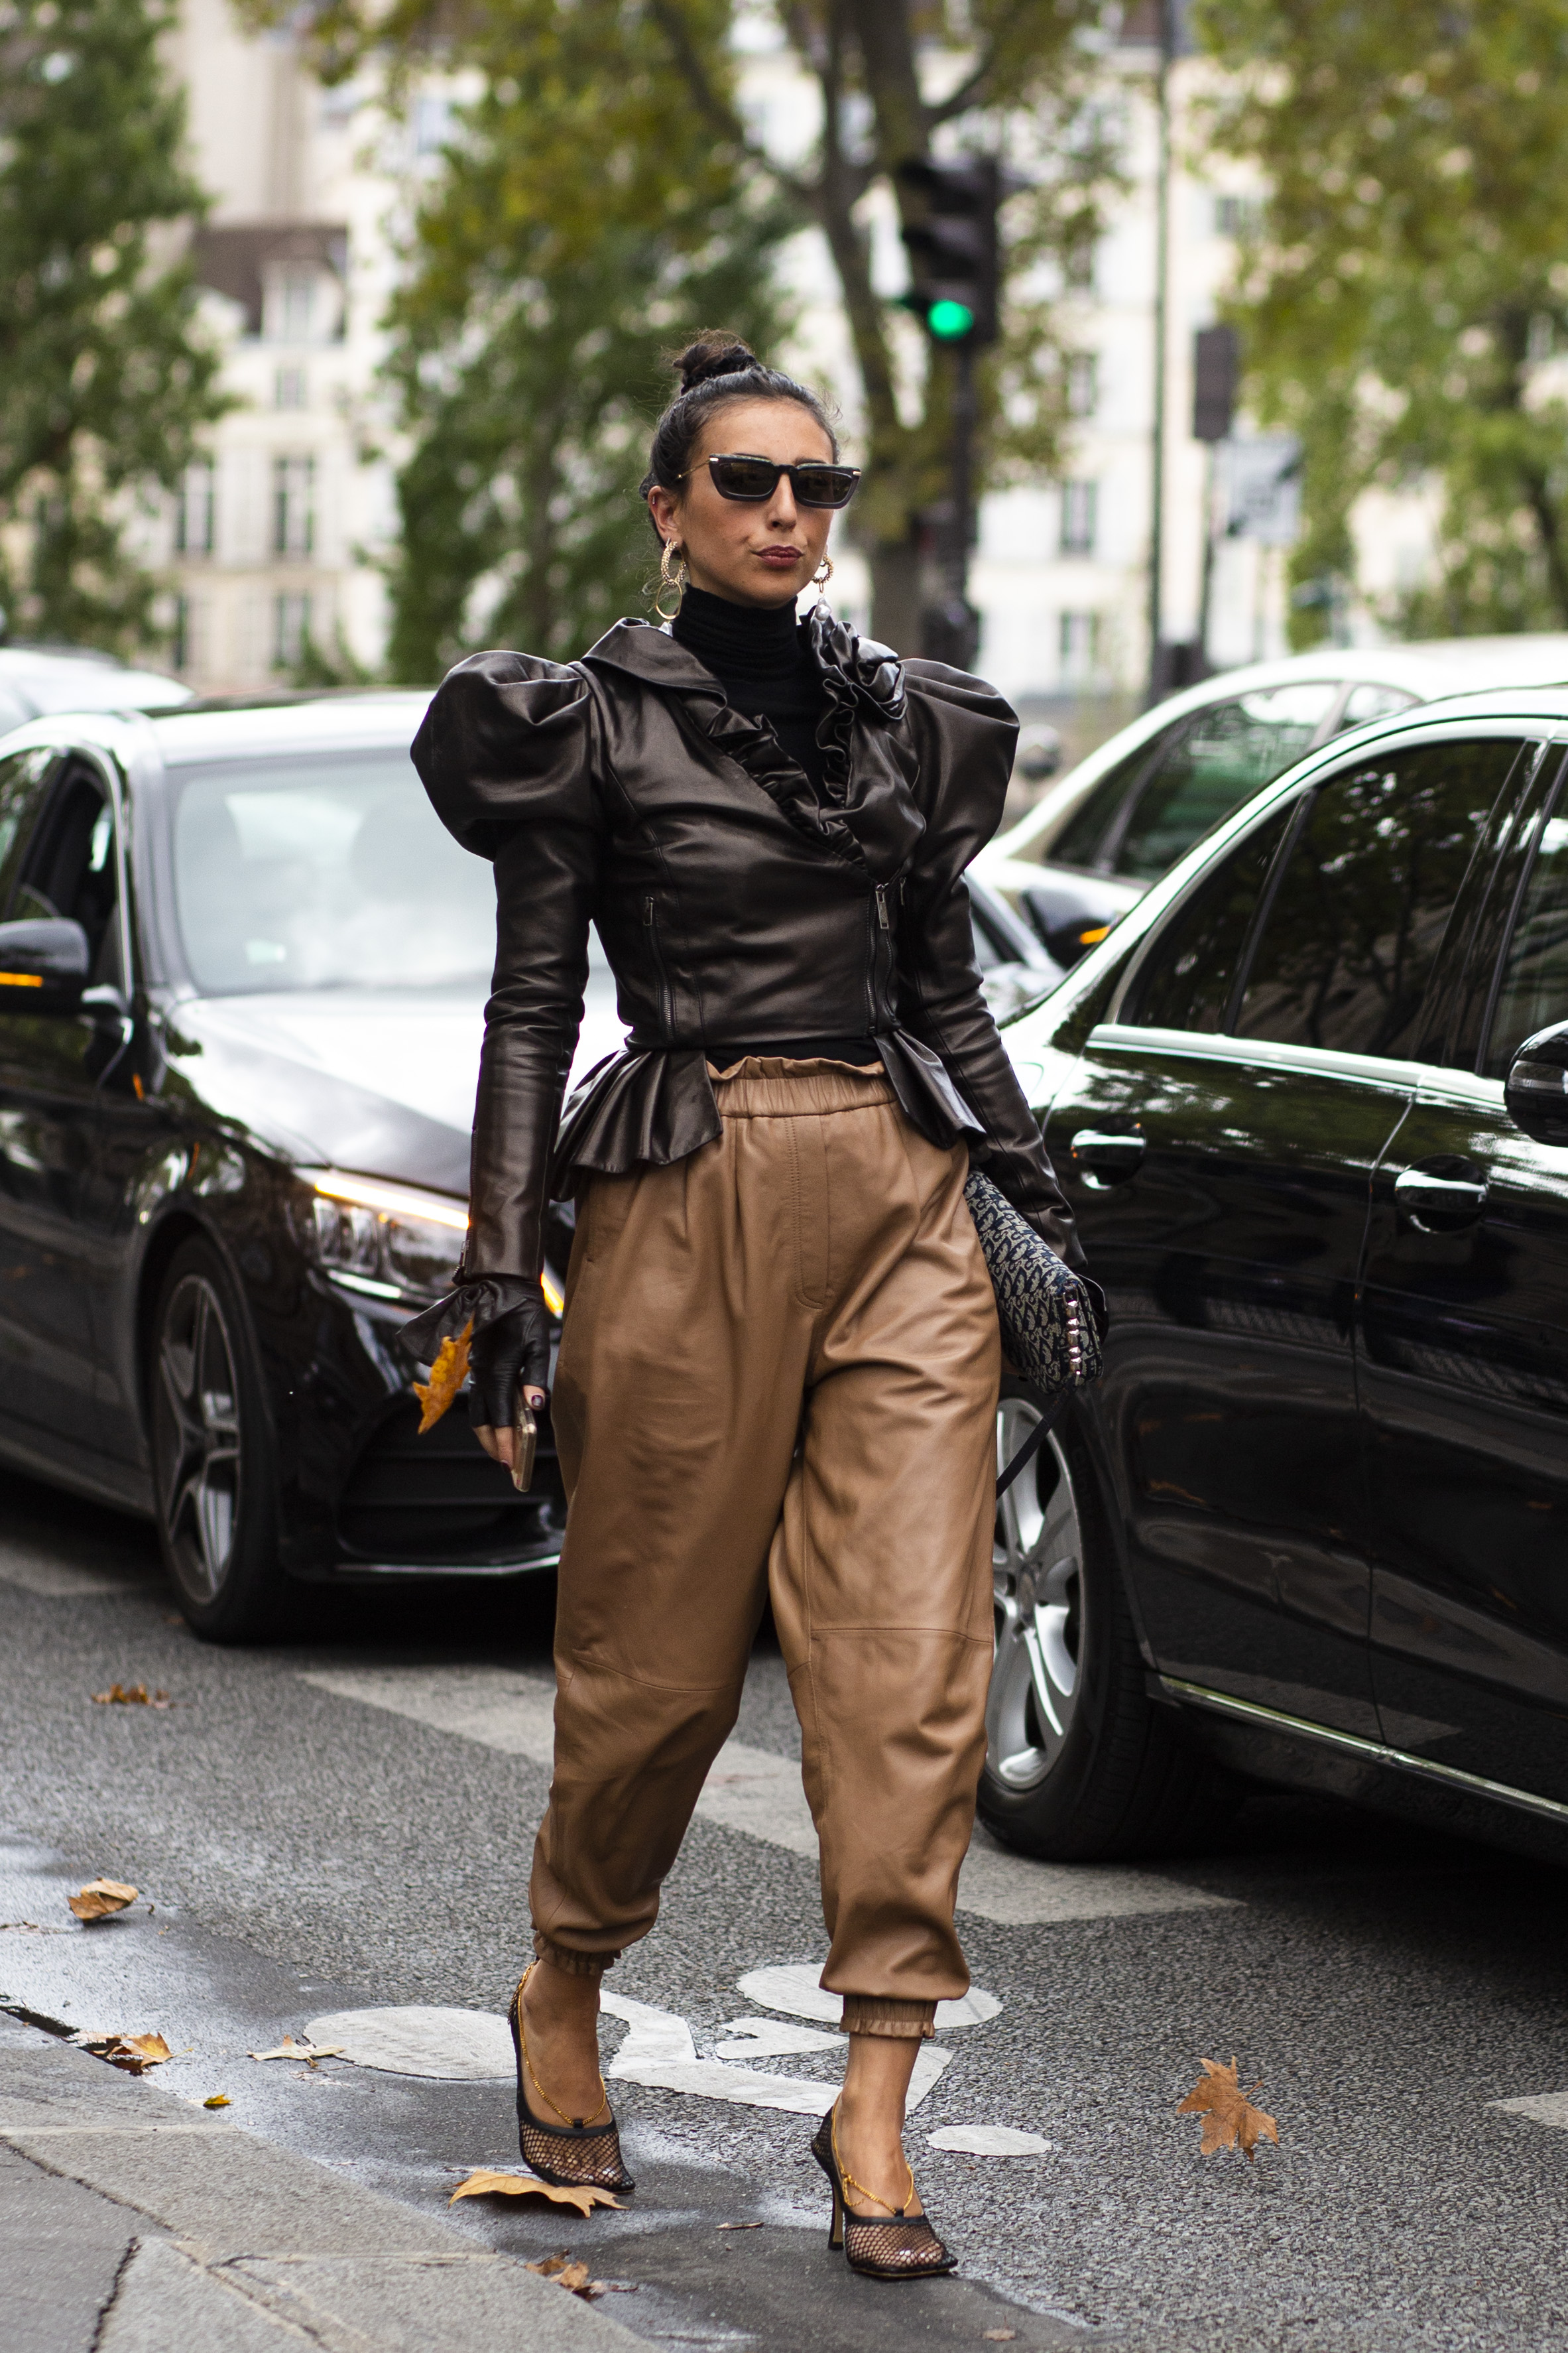 streetfashion_paris_wss20_230.jpg